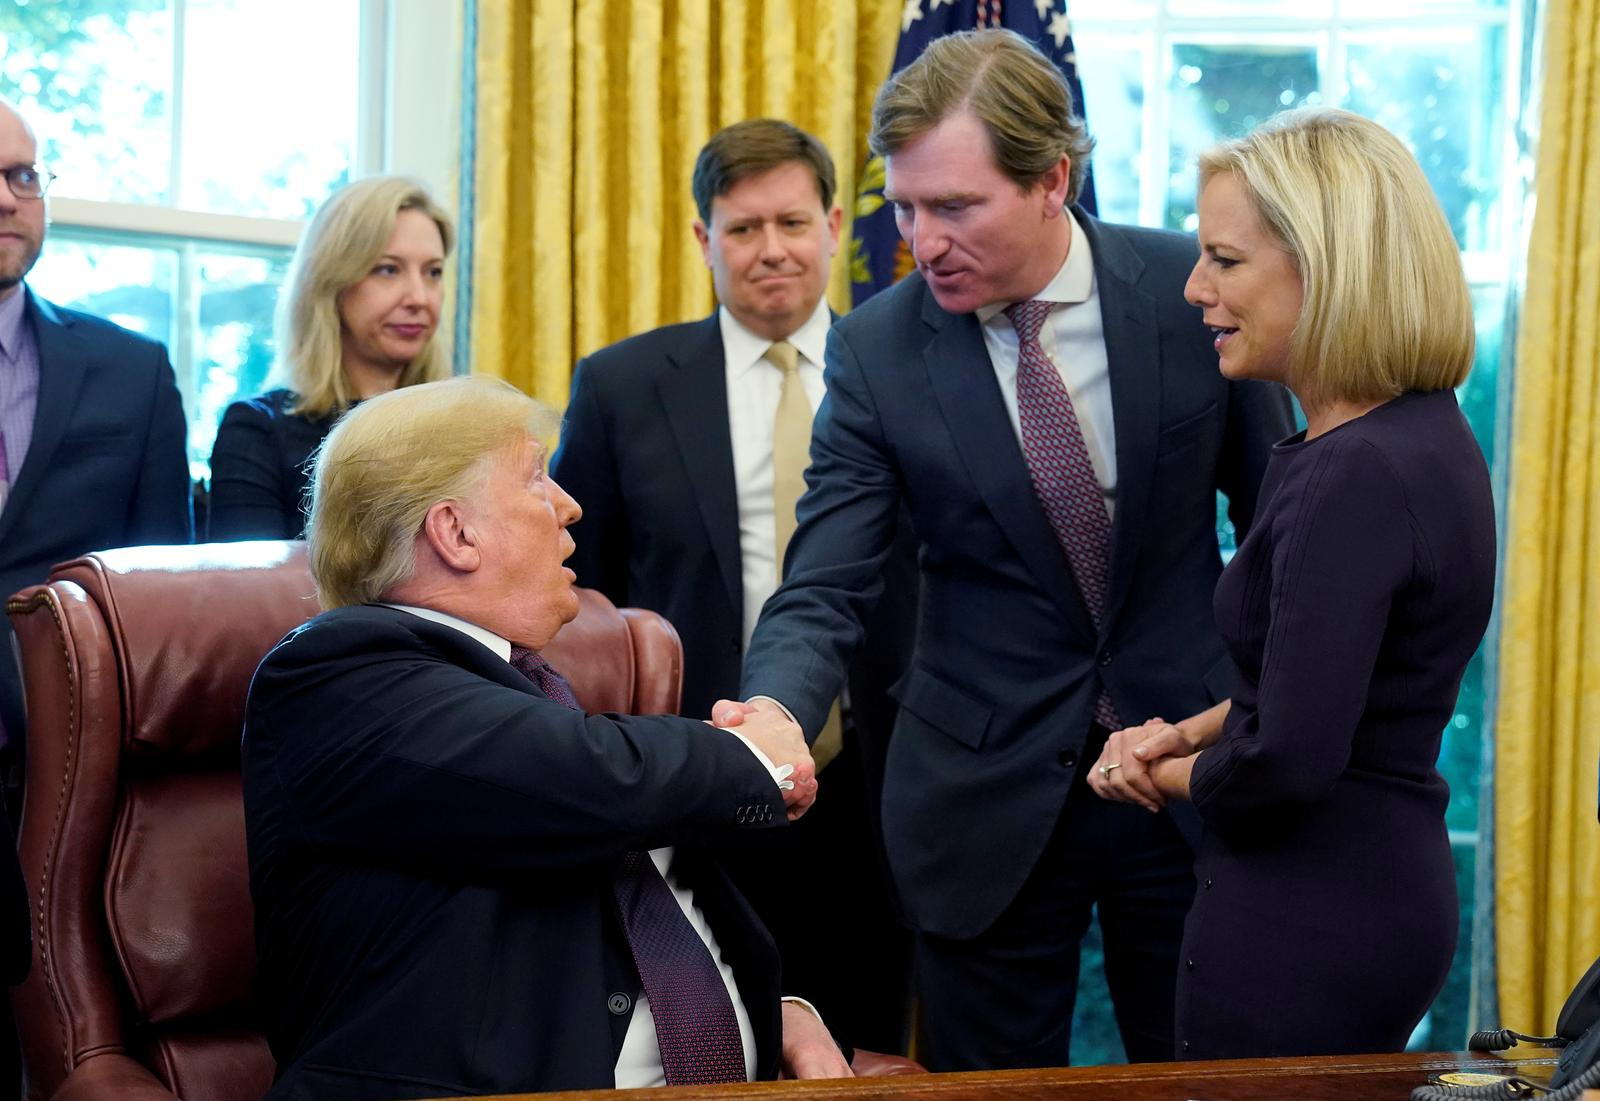 U.S. President Donald Trump shakes hands with Chris Krebs, the director of the Cybersecurity and Infrastructure Security Agency (CISA) as DHS Secretary Kirstjen Nielsen (R) looks on after a signing ceremony for the Cybersecurity and Infrastructure Security Agency Act in the Oval Office of the White House in Washington, U.S. November 16, 2018. Photo: Reuters